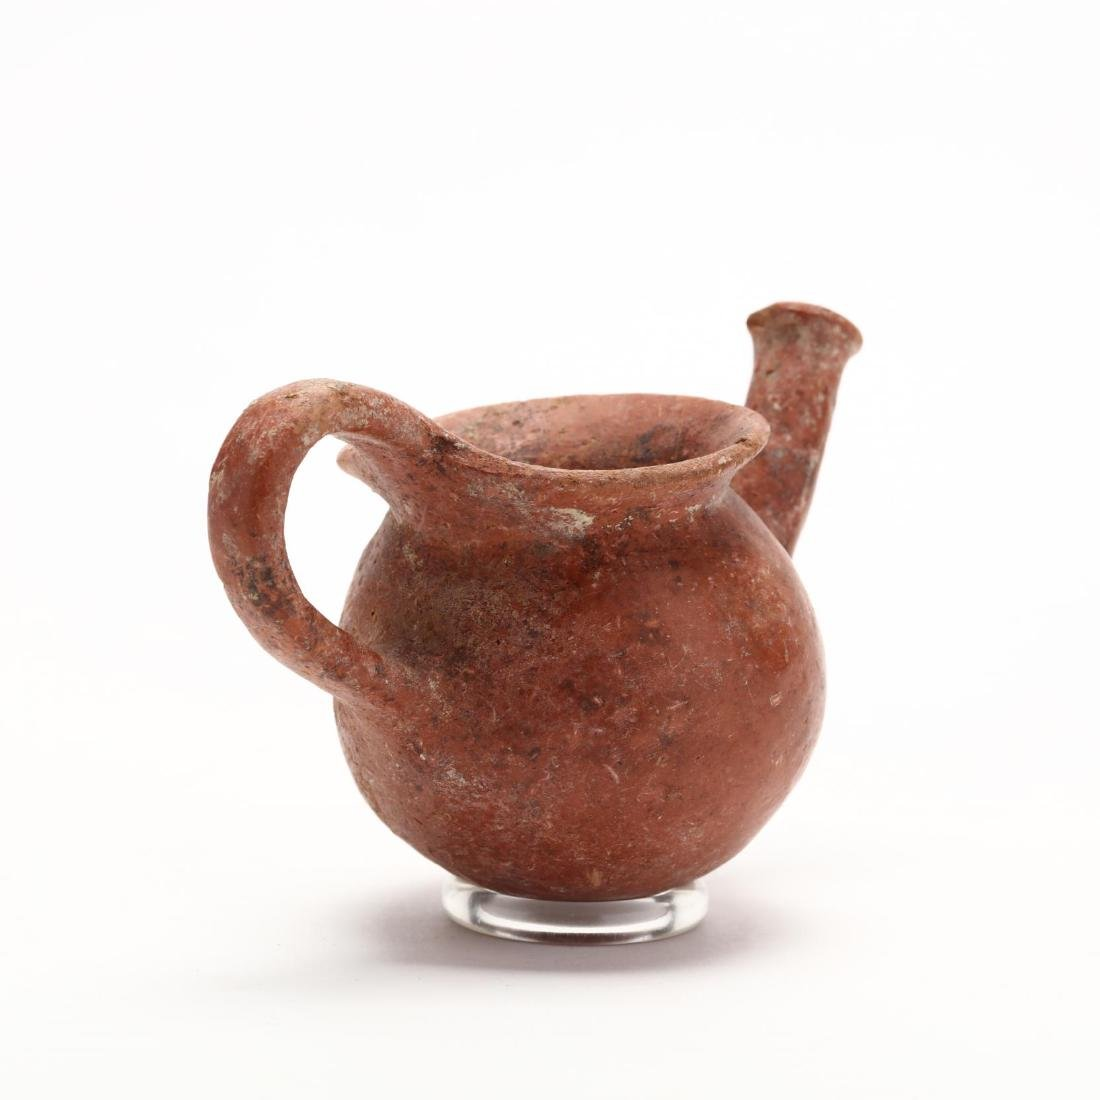 Cypriot Early Bronze Age Polished Red Ware Vessel - 4